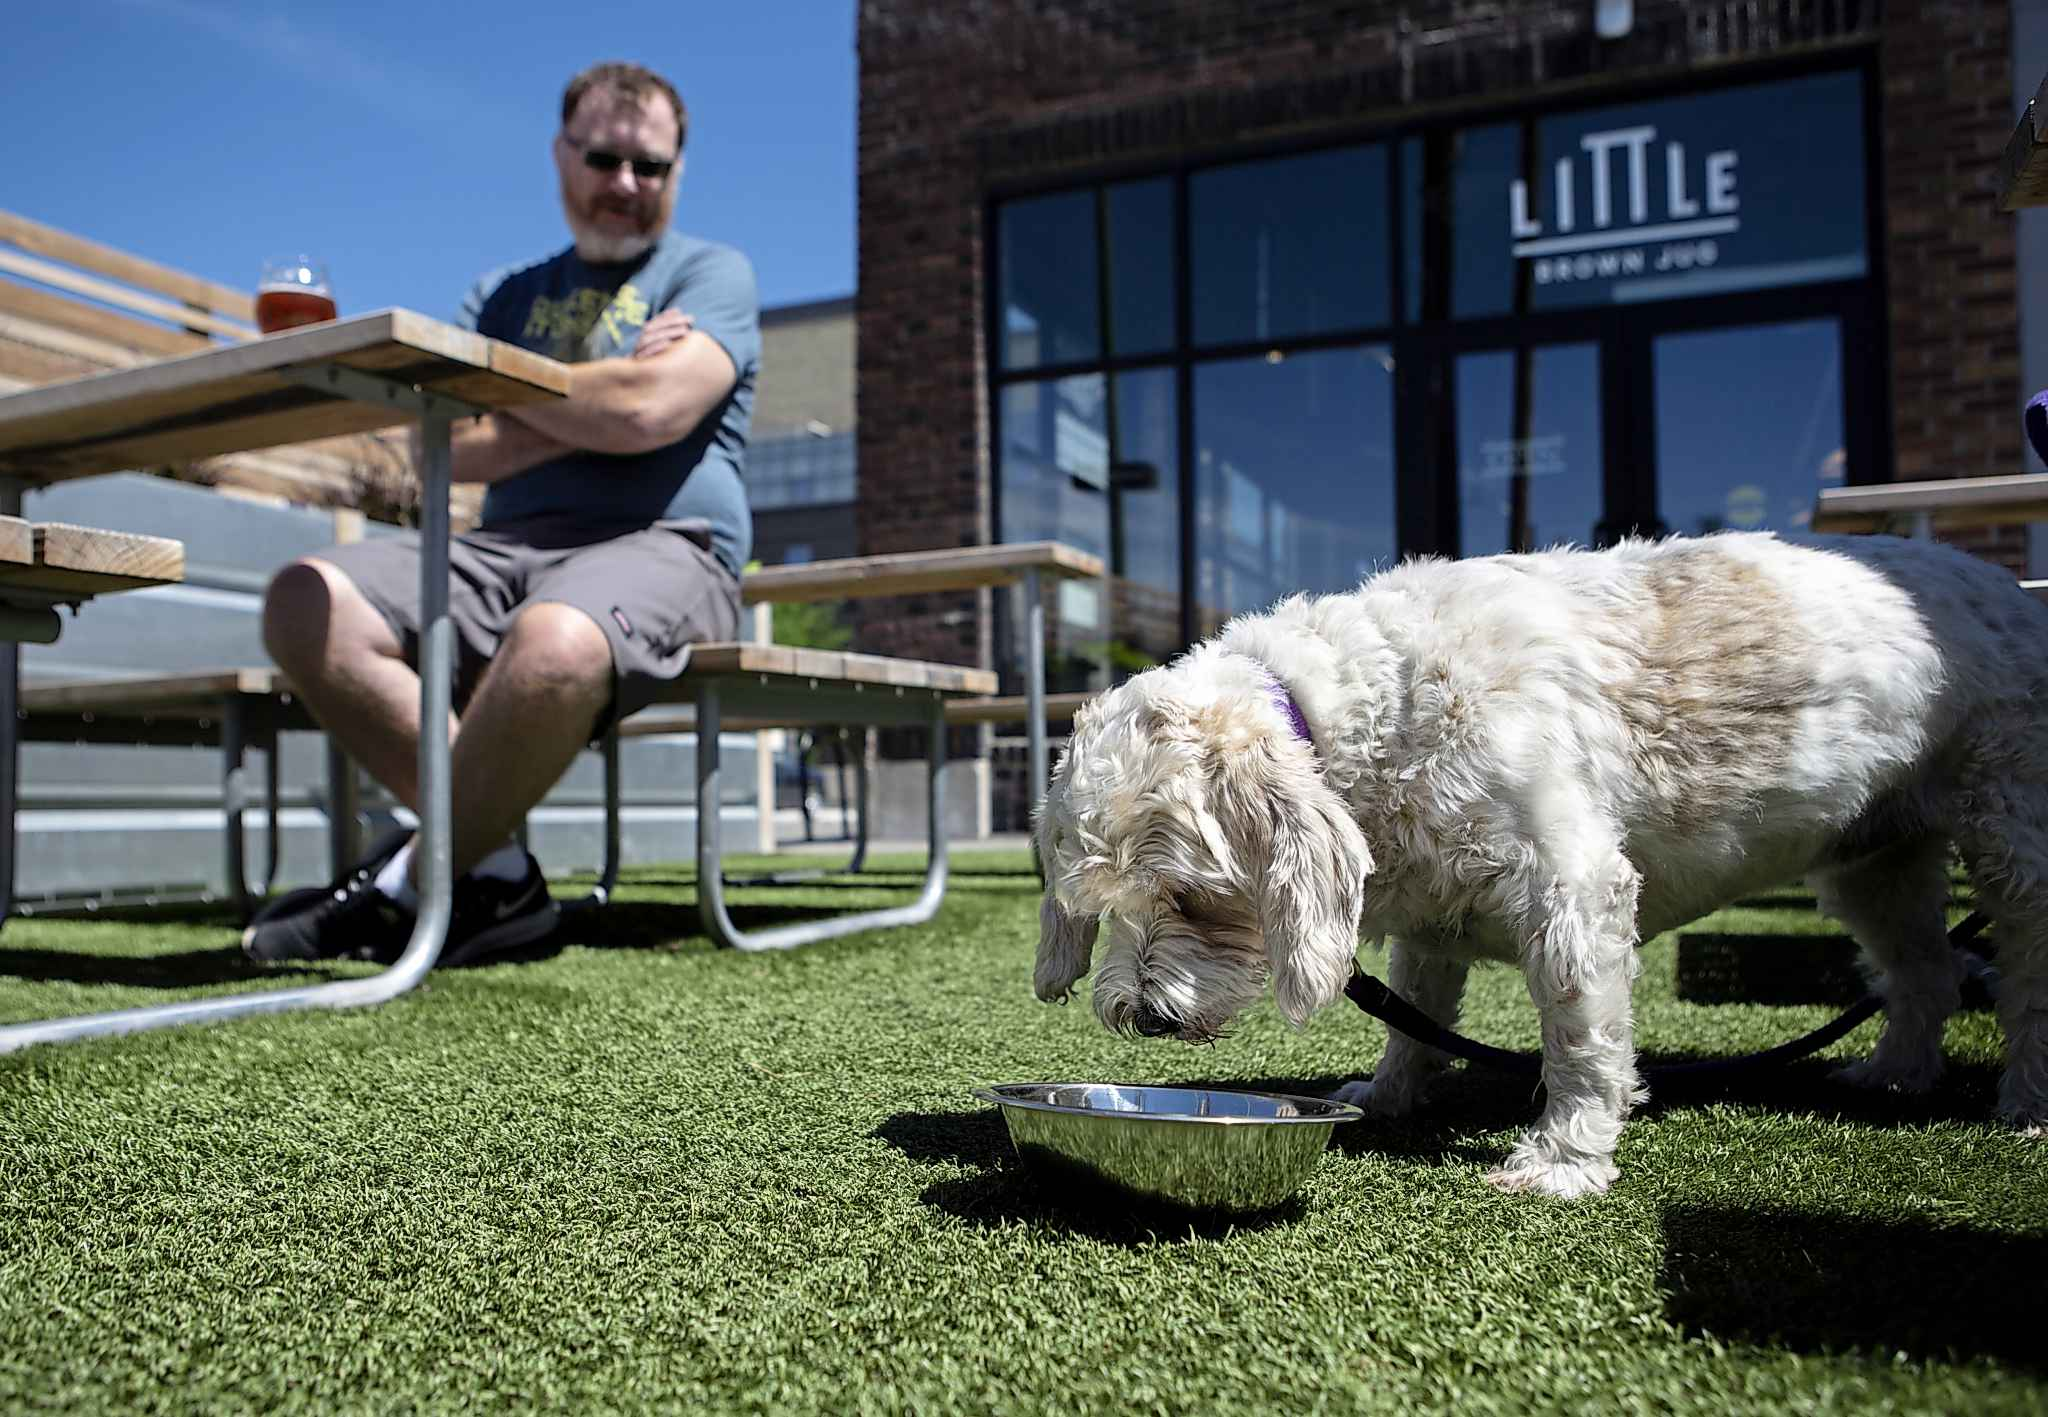 Little Brown Jug owner Kevin Scelch's dog, Penny, on the patio of the establishment. (Andrew Ryan / Winnipeg Free Press)